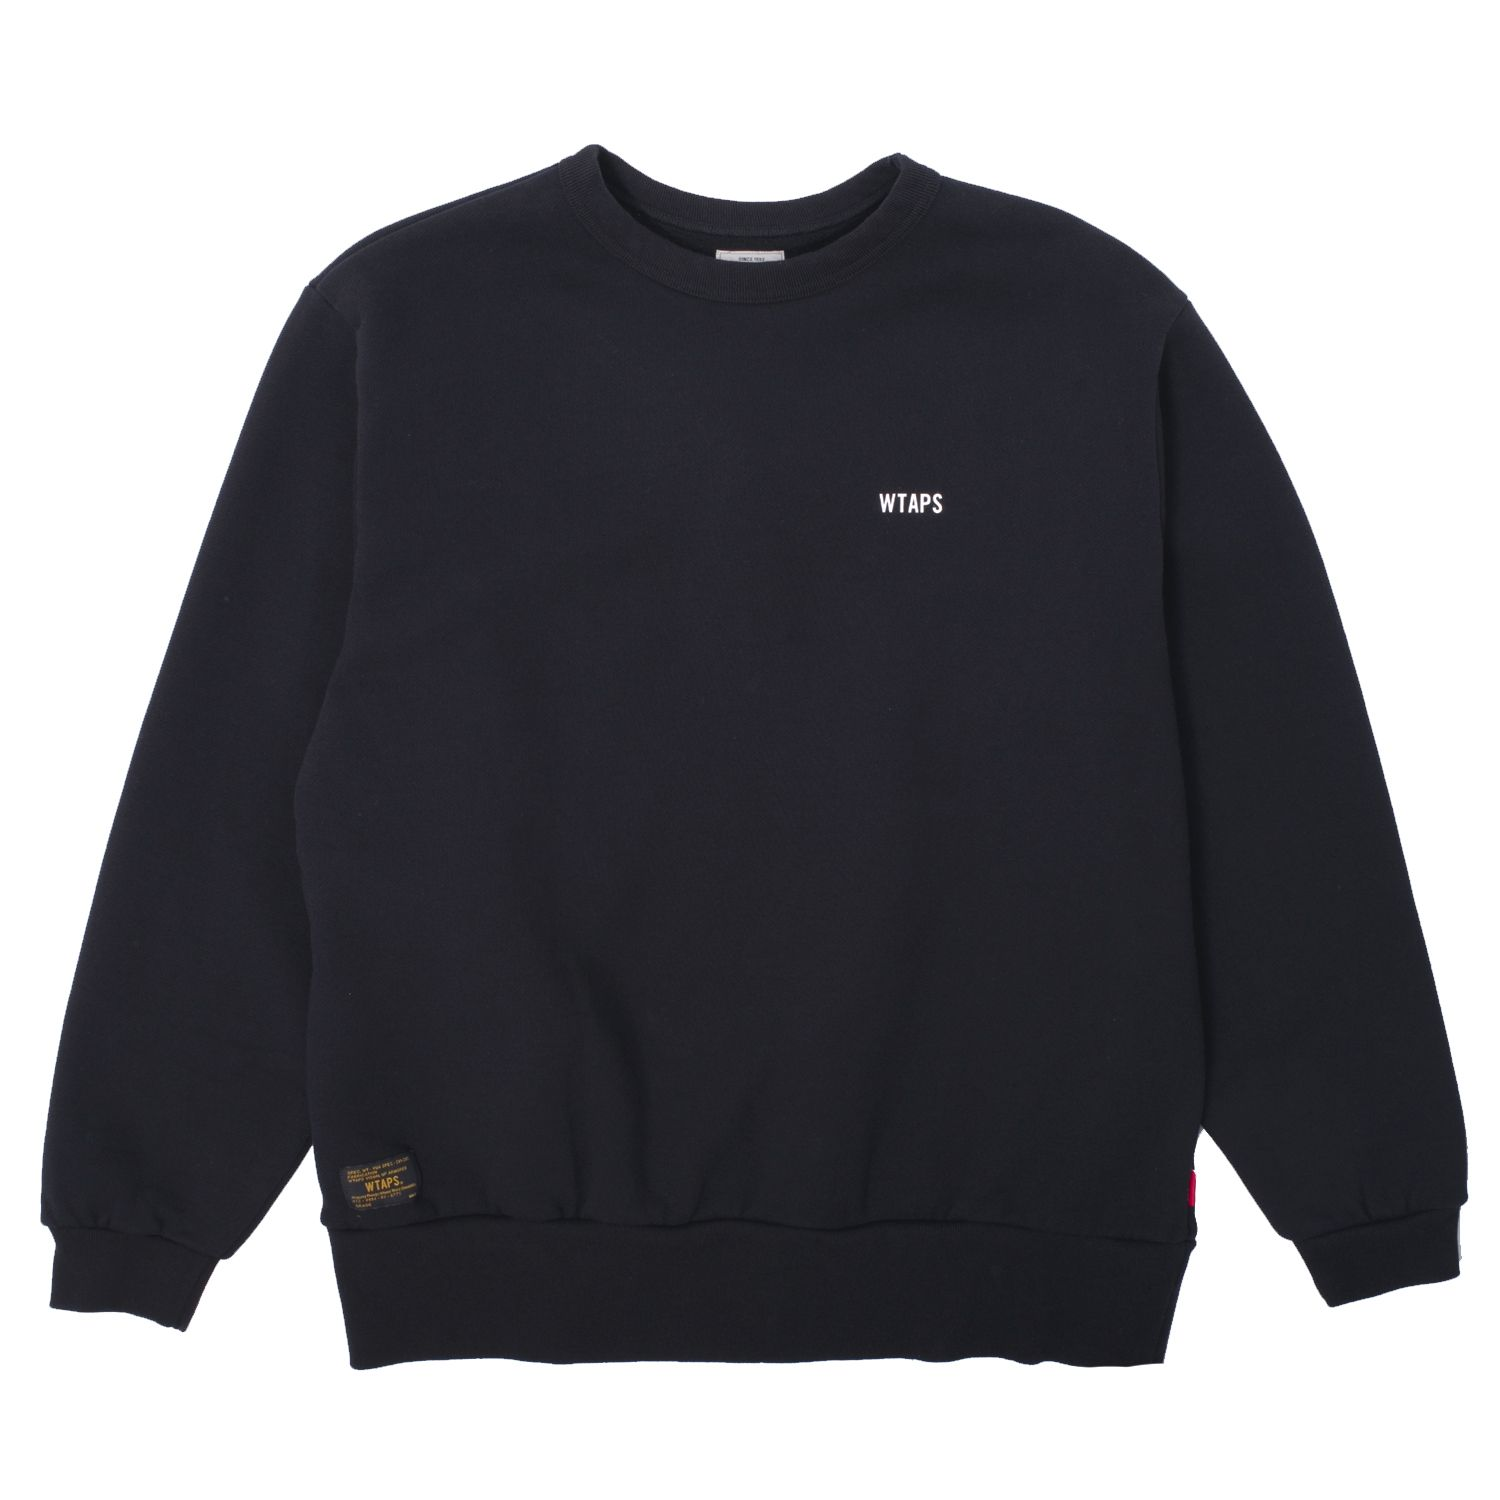 Classic Design Crewneck 04 Sweatshirt from Wtaps. This classic piece features heavyweight premium 100% construction with fleece backing, small print at the chest, large unique puff printed cross bones across the back, ribbed collar, cuffs and hem, plus signature Wtaps' branding throughout.